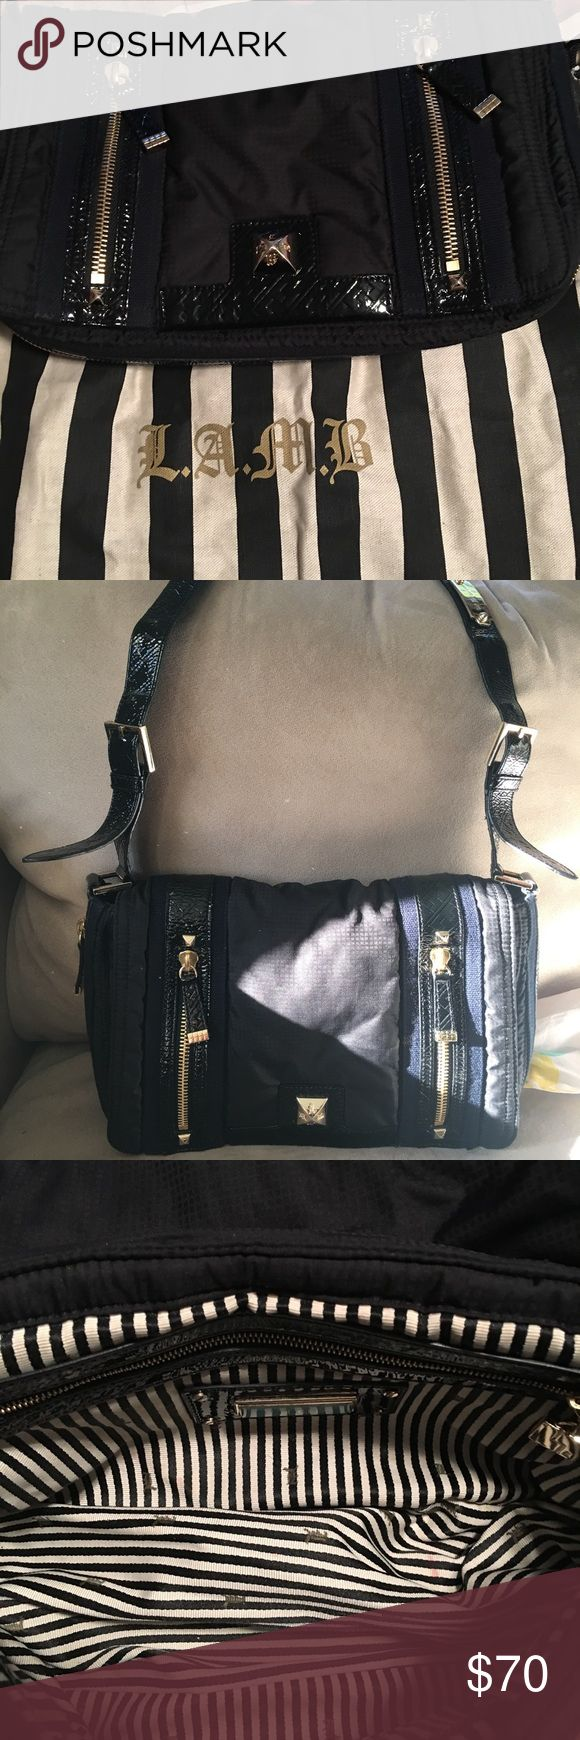 Very pretty over shoulder LAMB bag. Stylish authentic L.A.M.B. By Gwen Stephani bag.  Black with golden buckles and zippers. Adjustable shoulder strap. Signature black and white striped inside. Perfect condition. LAMB Bags Crossbody Bags